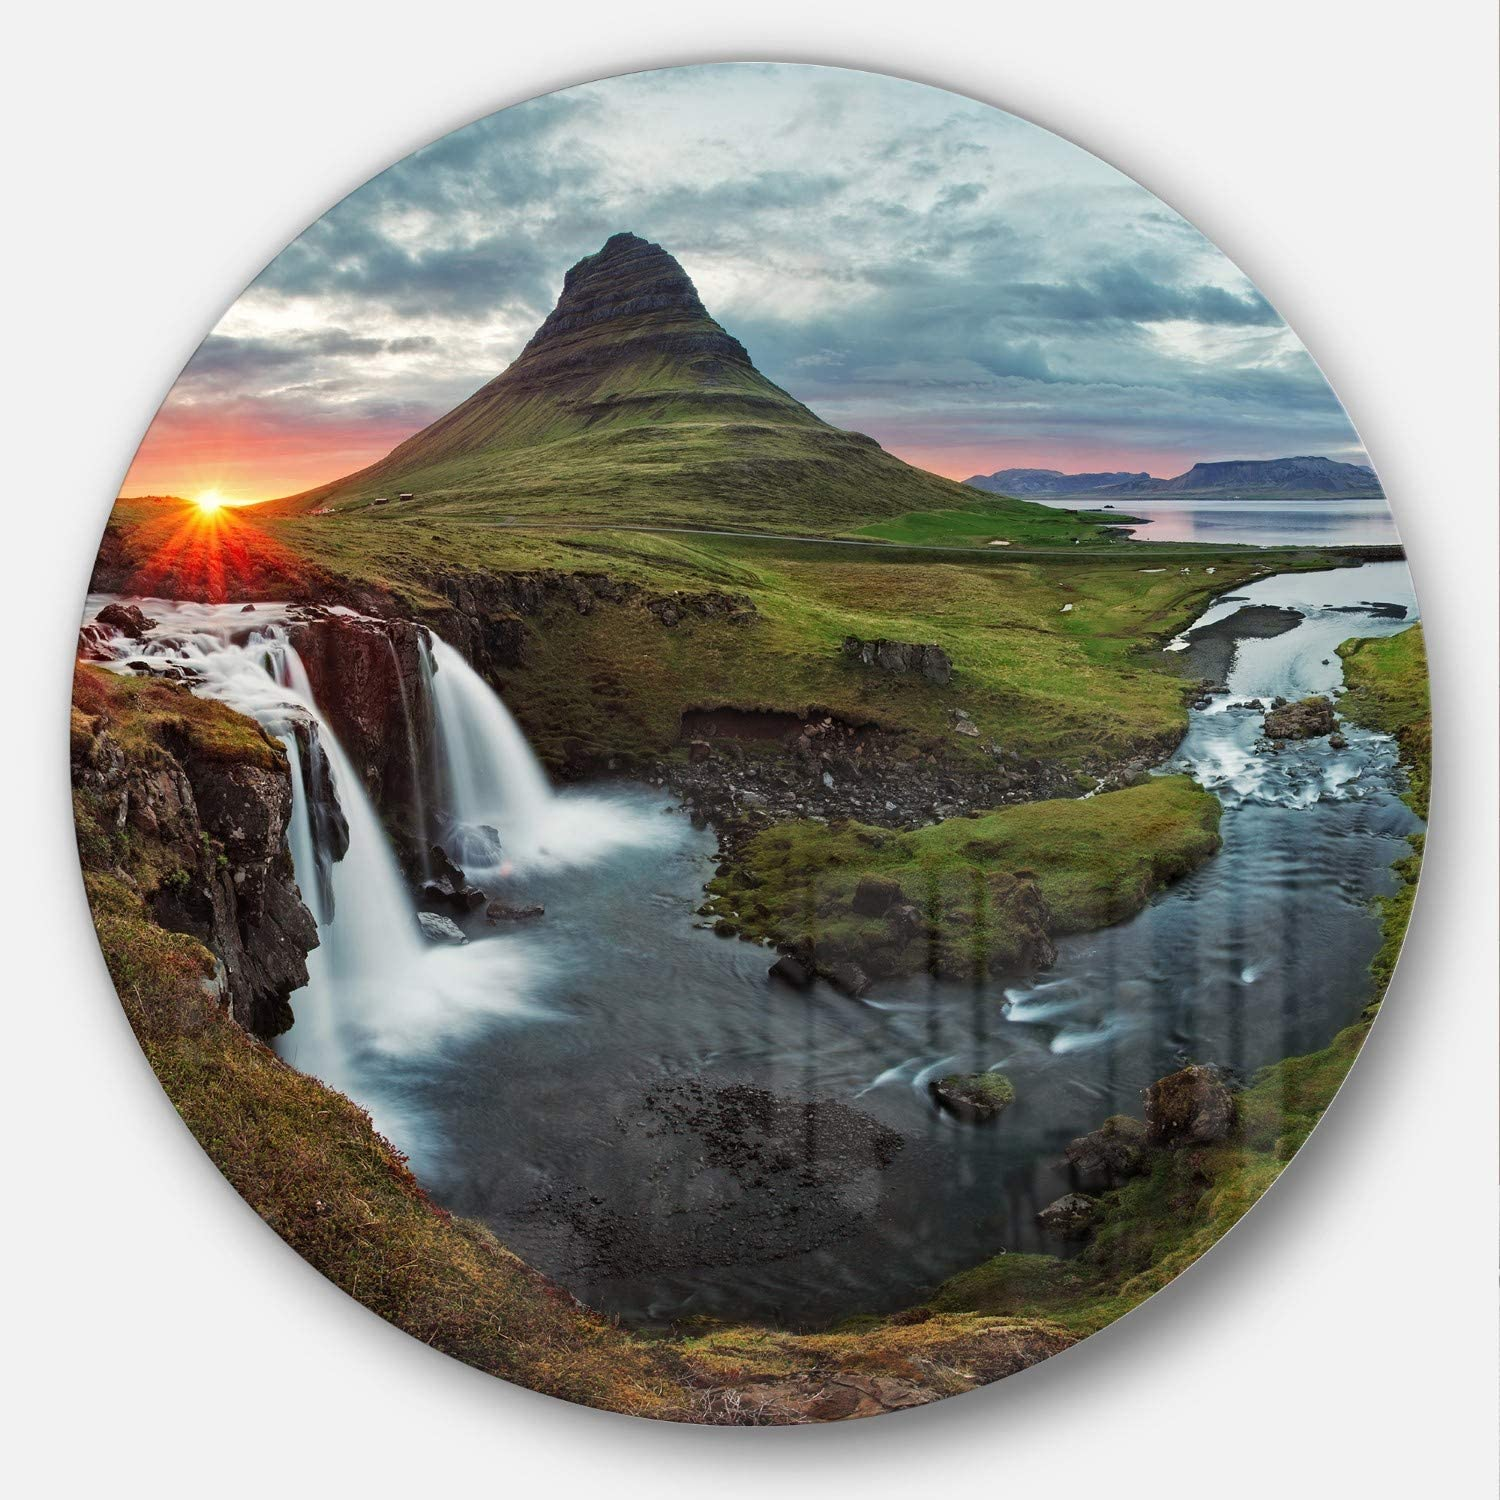 38x38-Disc of 38 inch Green//White Designart Iceland Landscape Spring Panorama Disc MT7026-C38-Disc